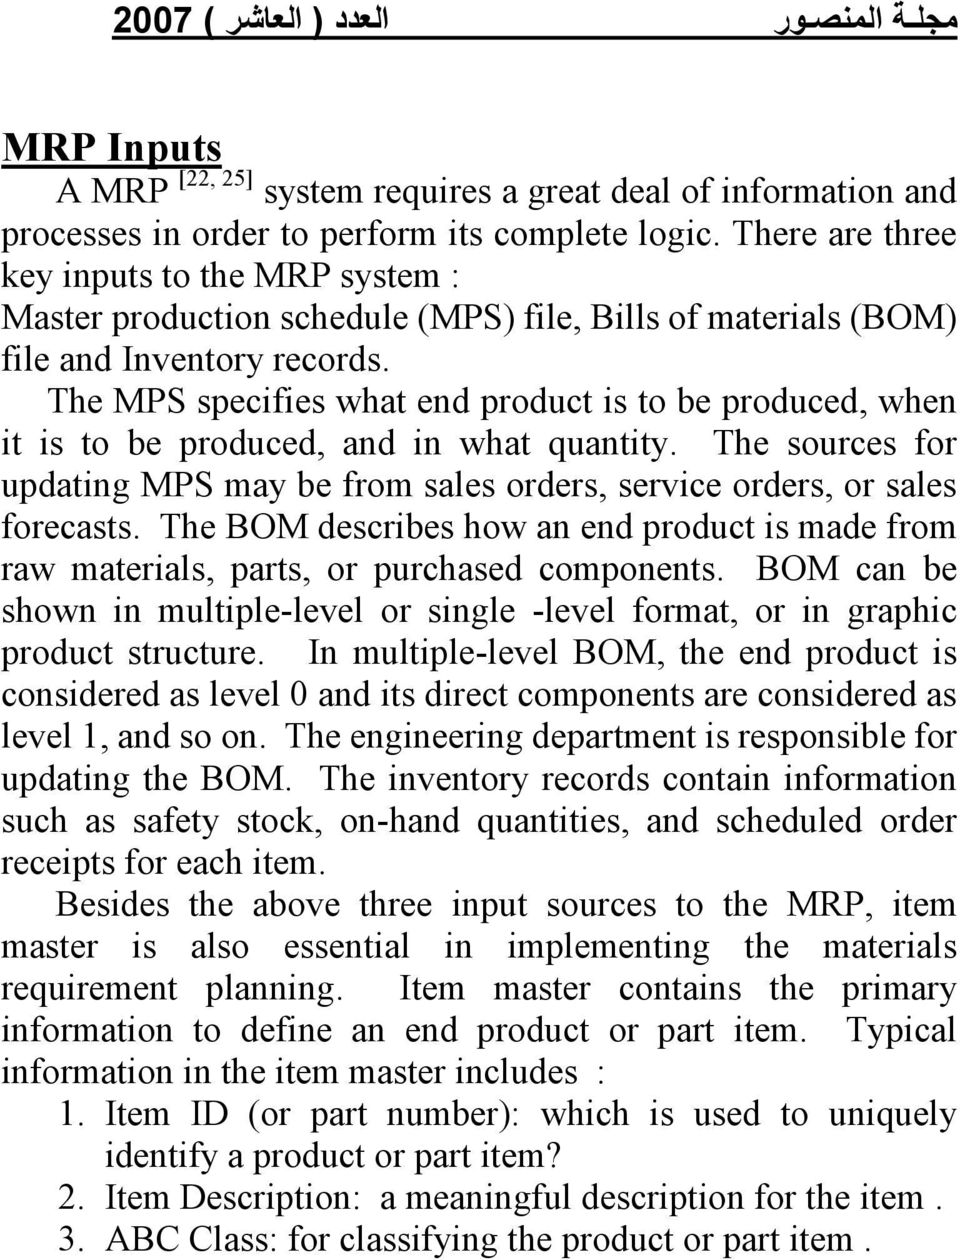 The MPS specifies what end product is to be produced, when it is to be produced, and in what quantity. The sources for updating MPS may be from sales orders, service orders, or sales forecasts.